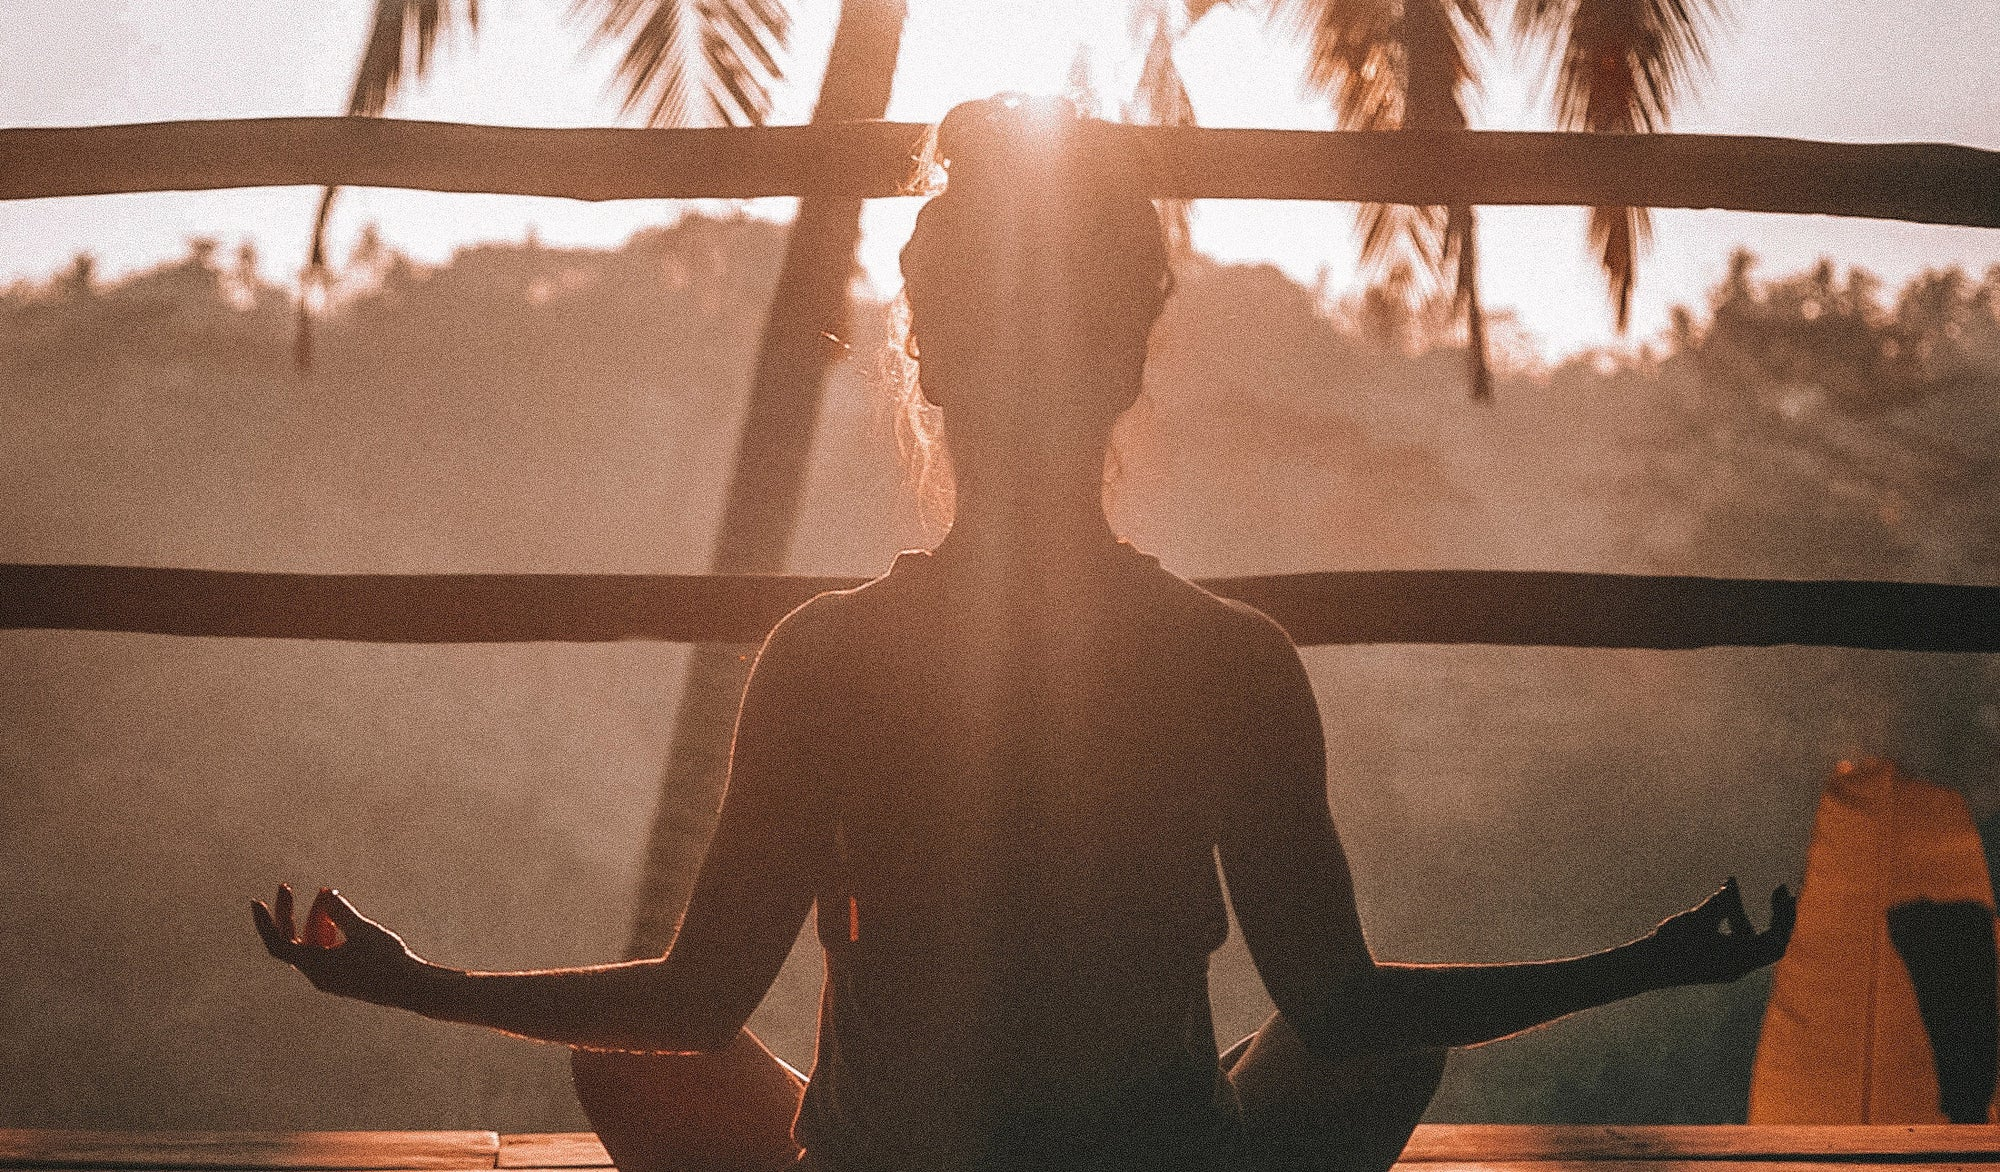 Meditation Apps: Headspace vs Simple Habit